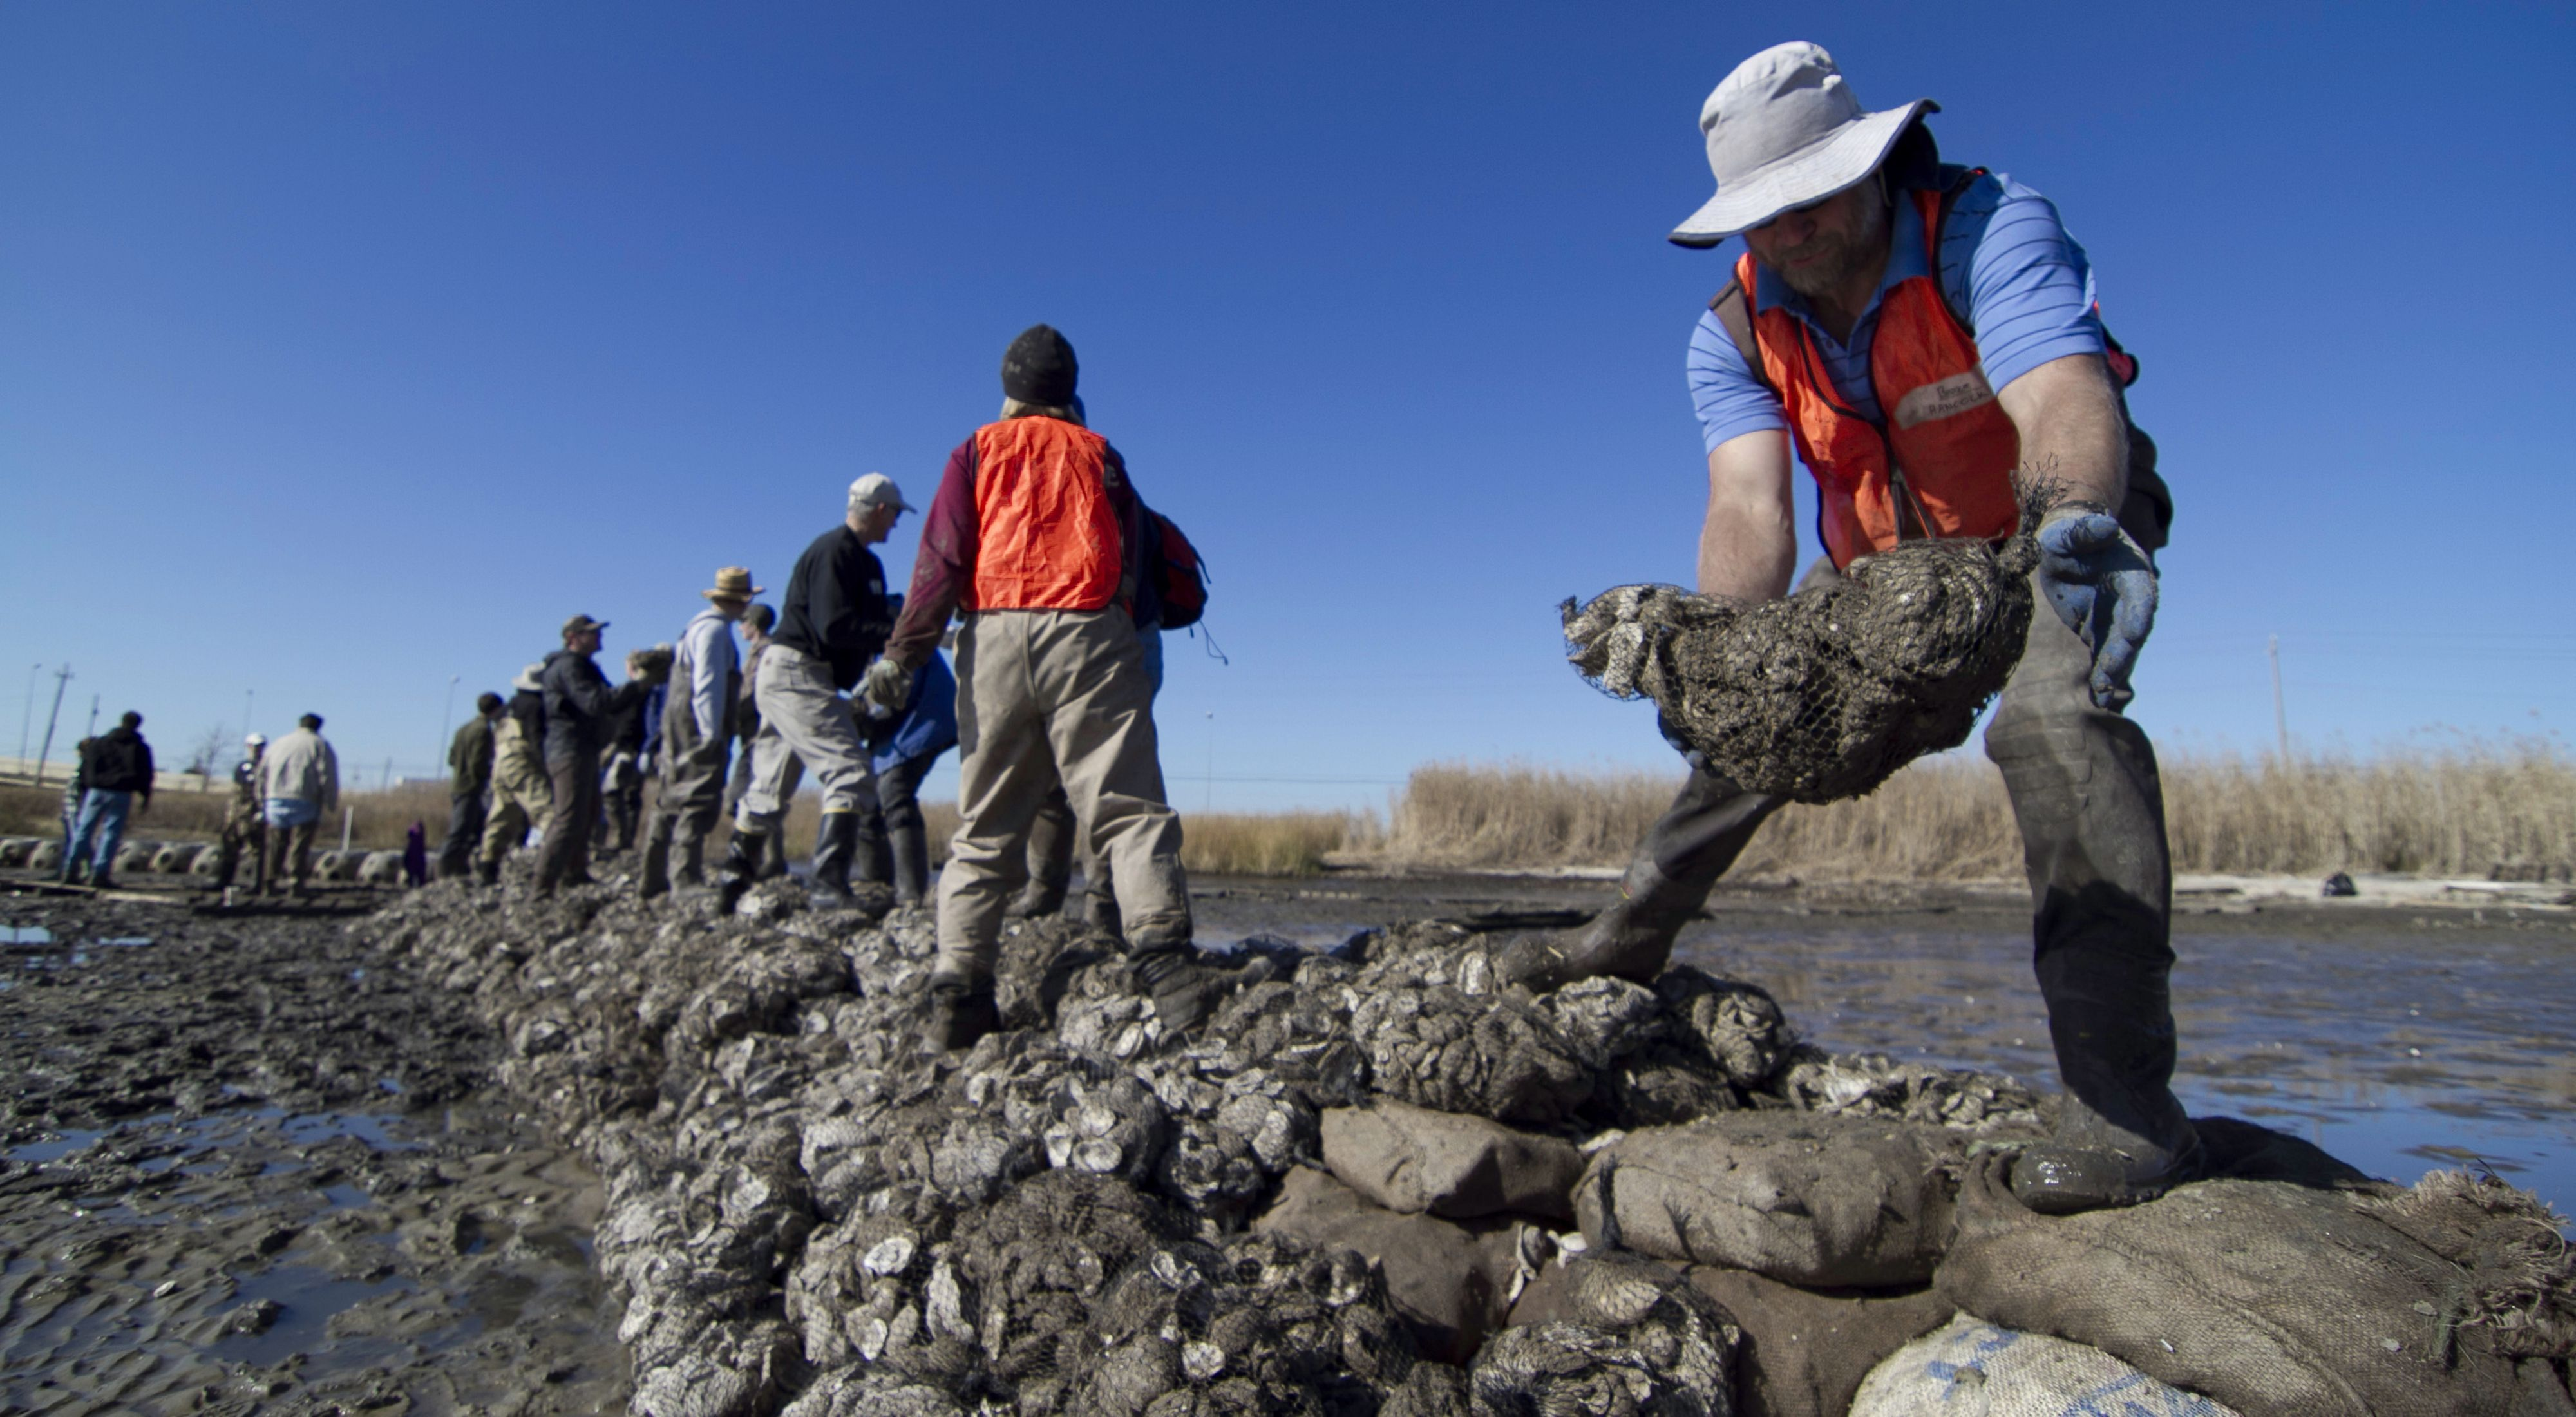 Volunteers in hip boots form a chain to pass oyster reef material in Alabama's Mobile Bay in a reef restoration project.